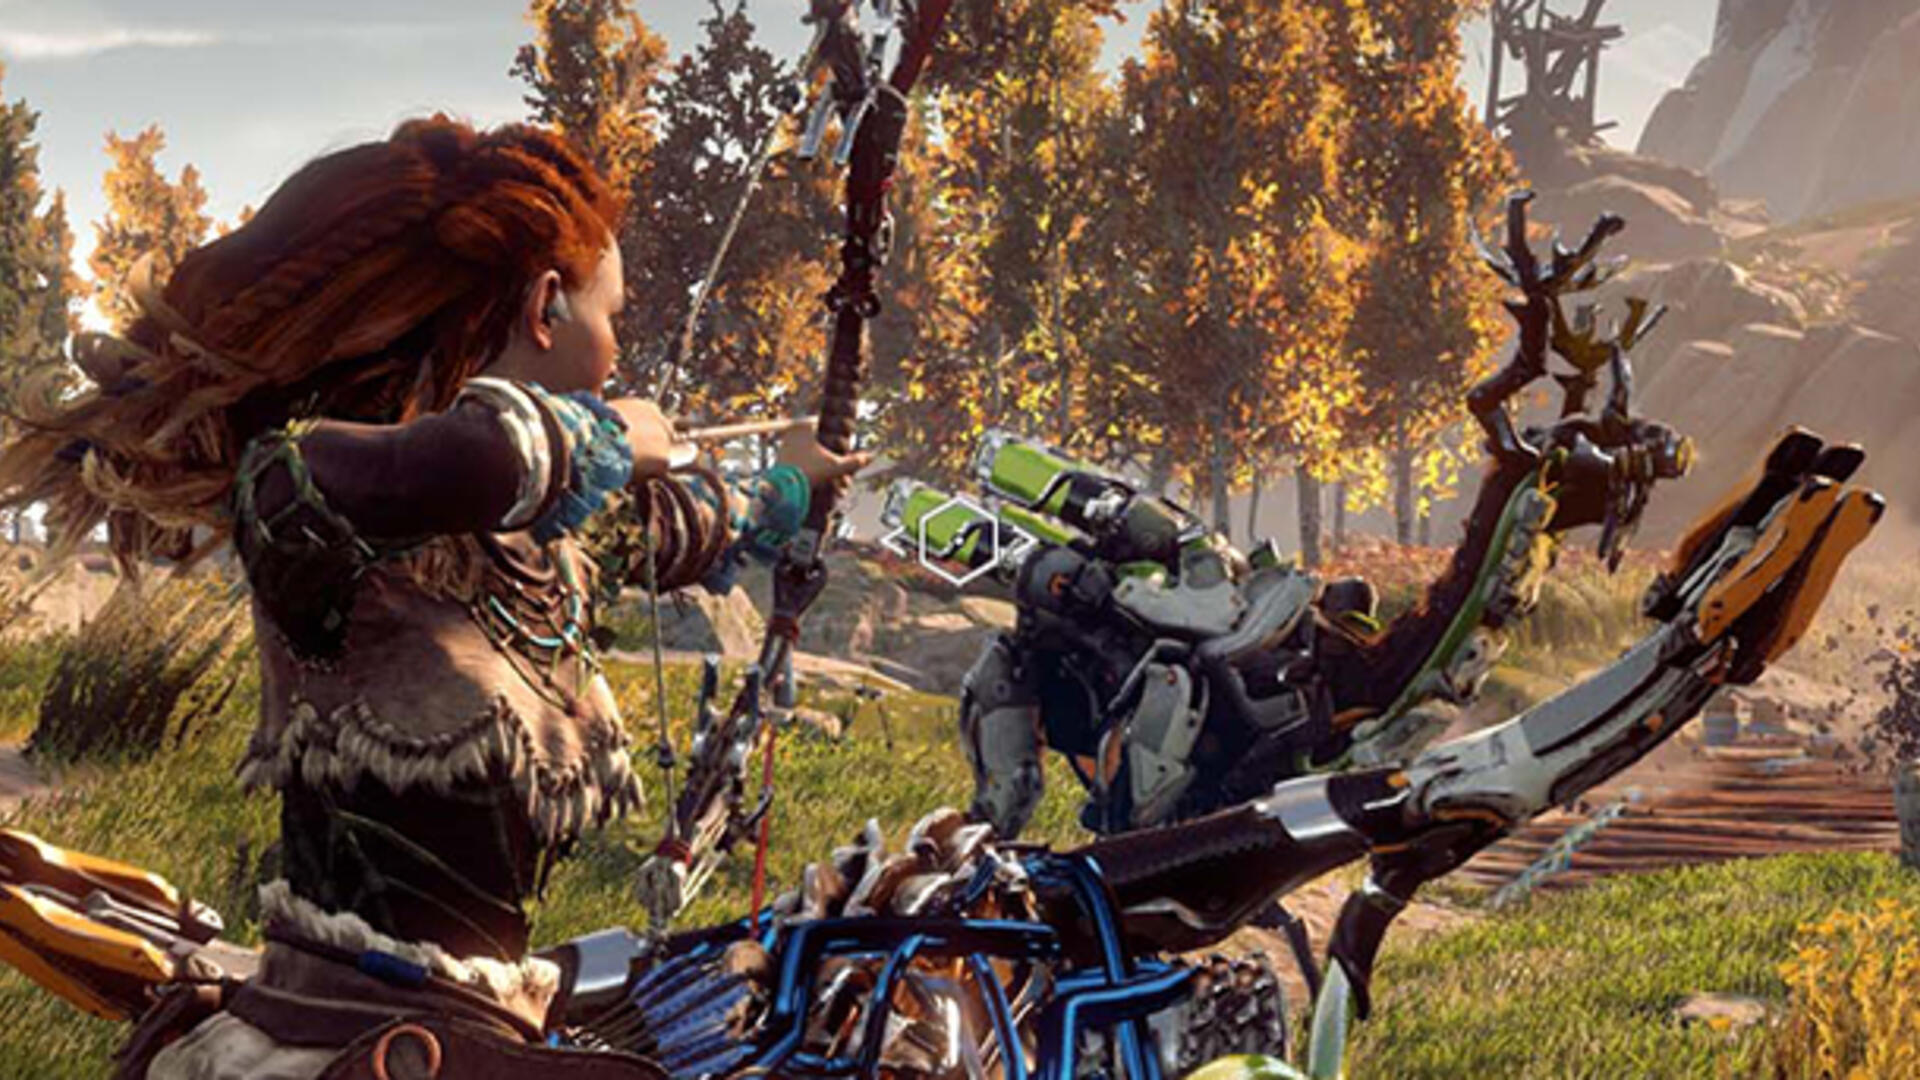 Horizon Zero Dawn: Where to Find the Power Cells to Unlock the Ancient Armor, the Game's Best Outfit